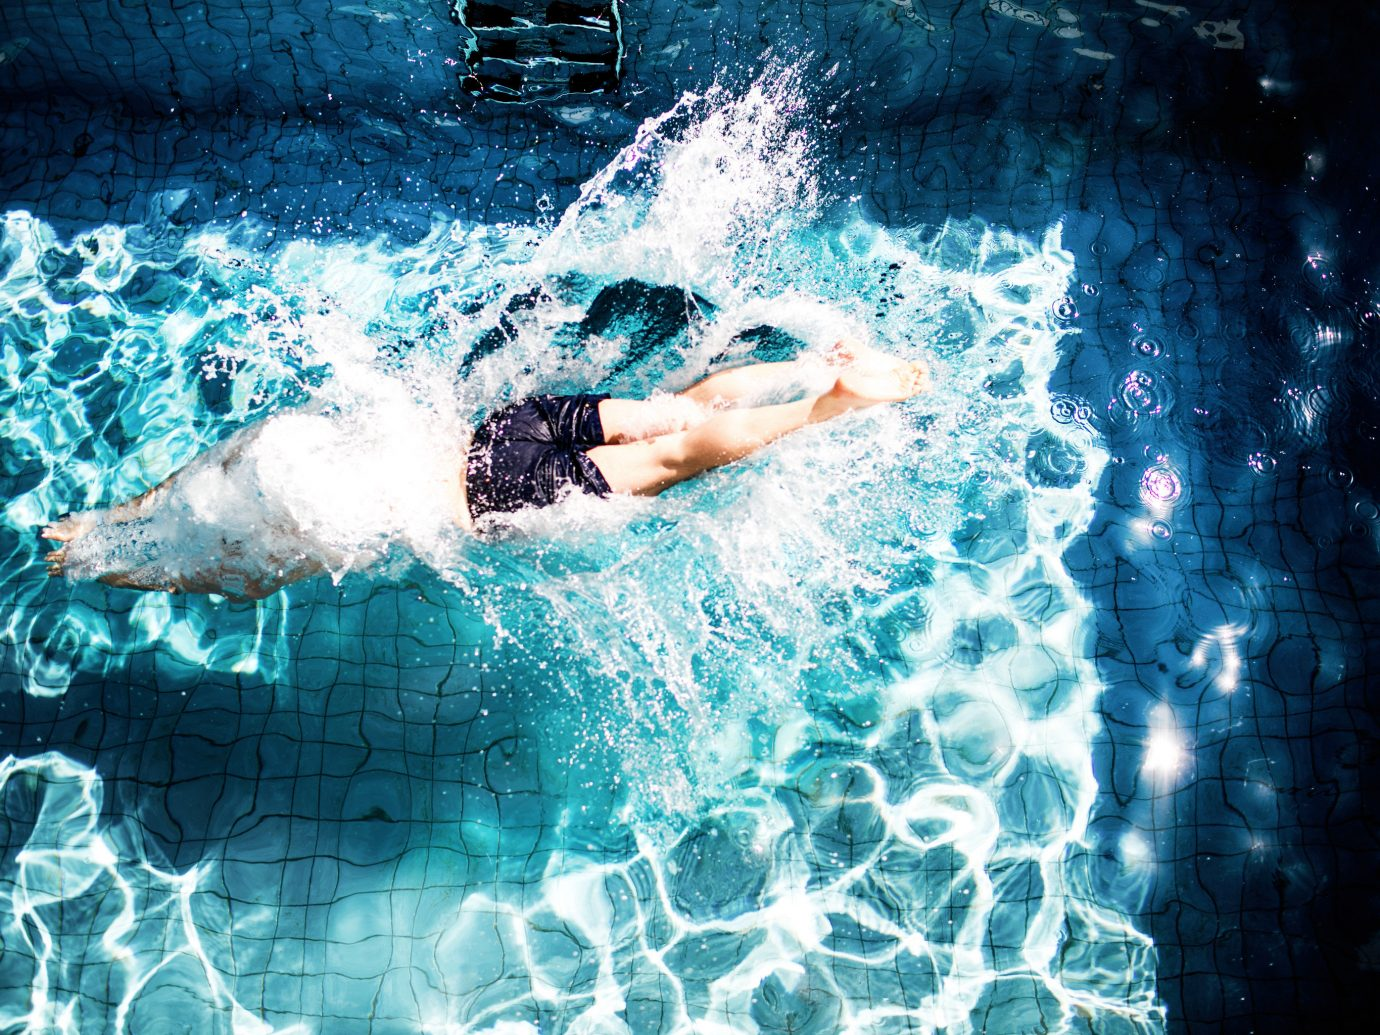 Boutique Hotels Hotels Luxury Travel water blue fun reflection swimming leisure photography underwater swimming pool recreation wave world water sport girl swimmer sky